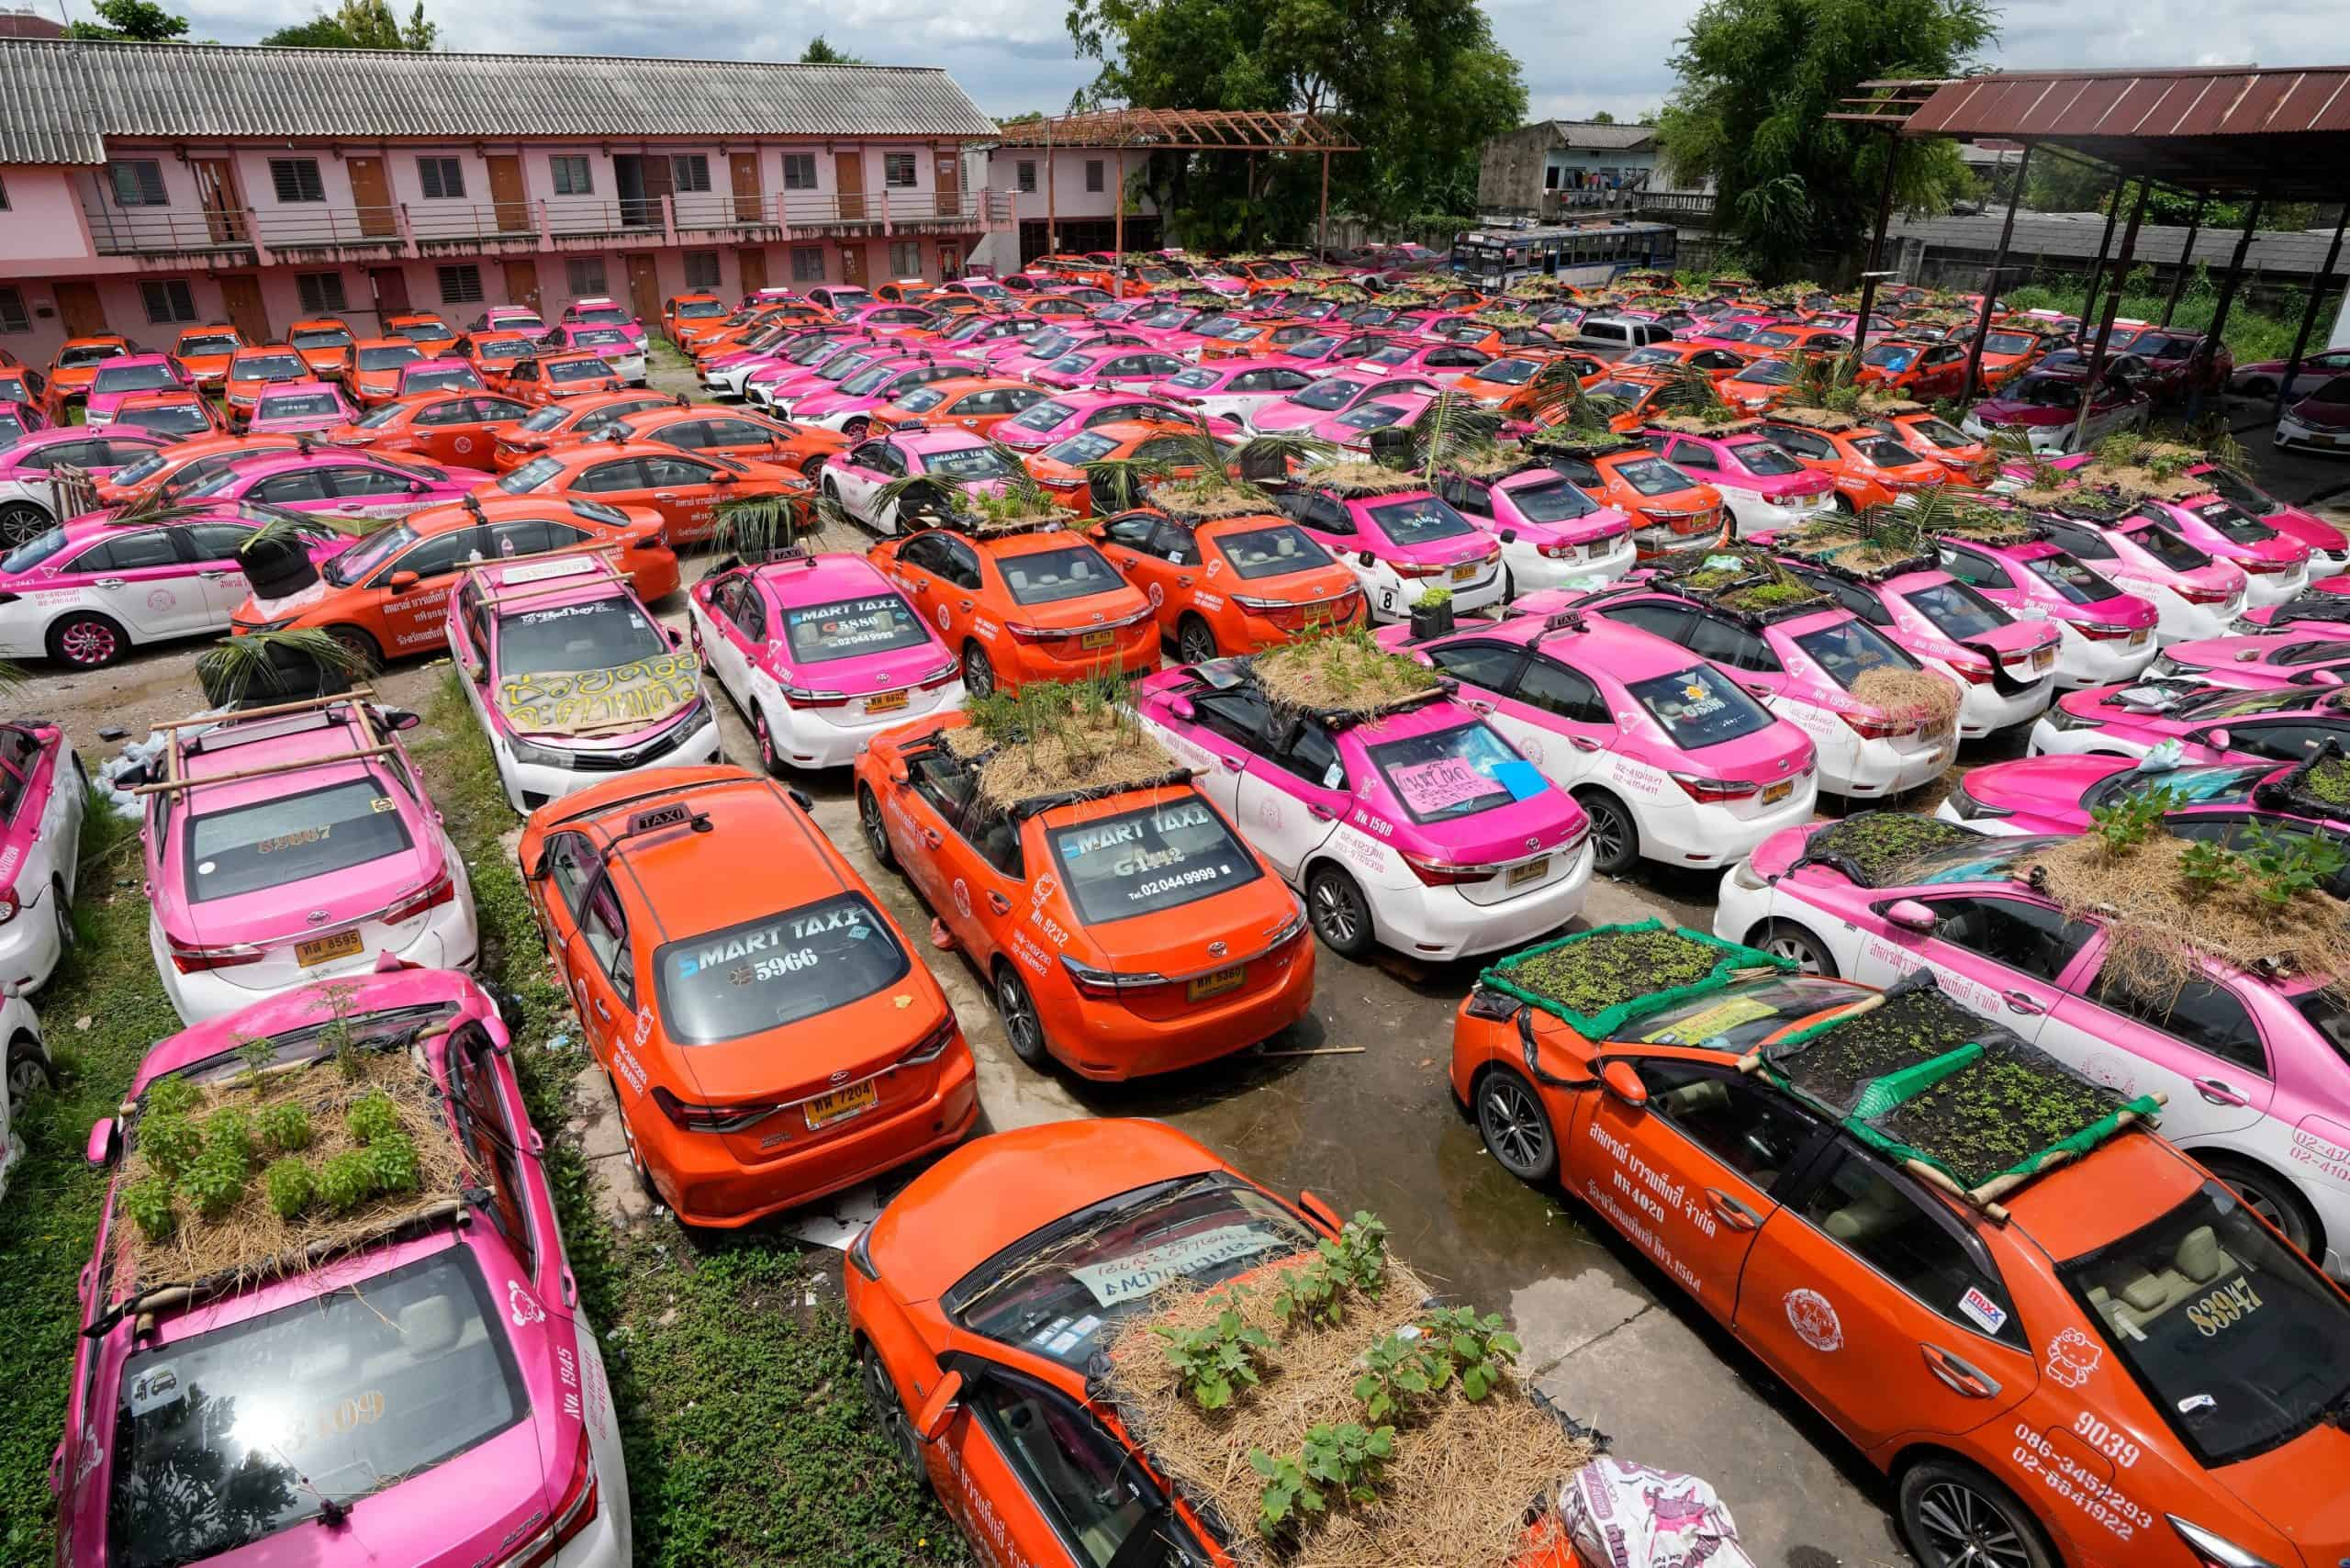 Idle taxis go green with mini gardens on car roofs